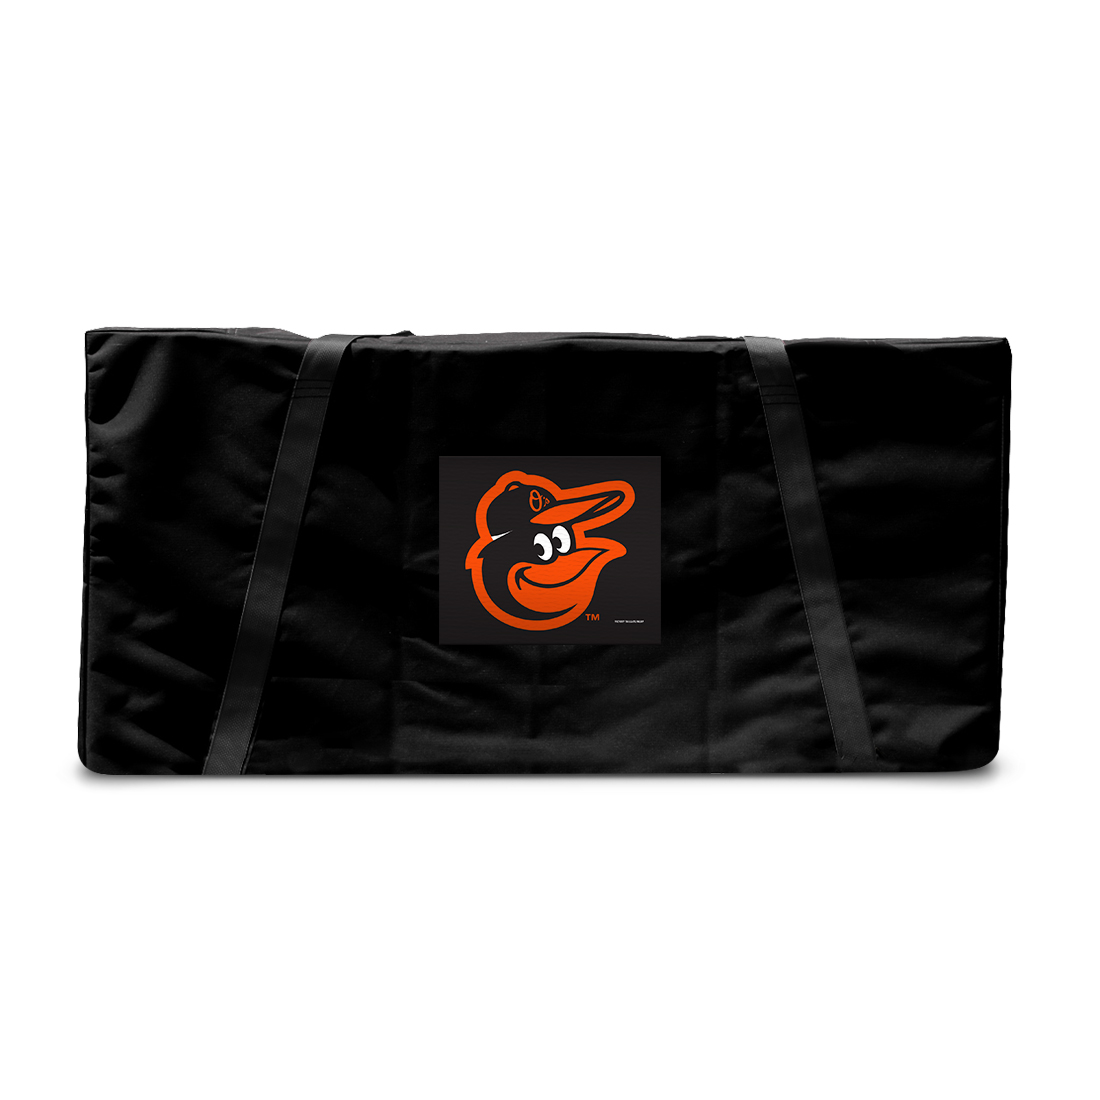 Baltimore Orioles MLB Baseball Tailgate Cornhole Storage Carrying Case